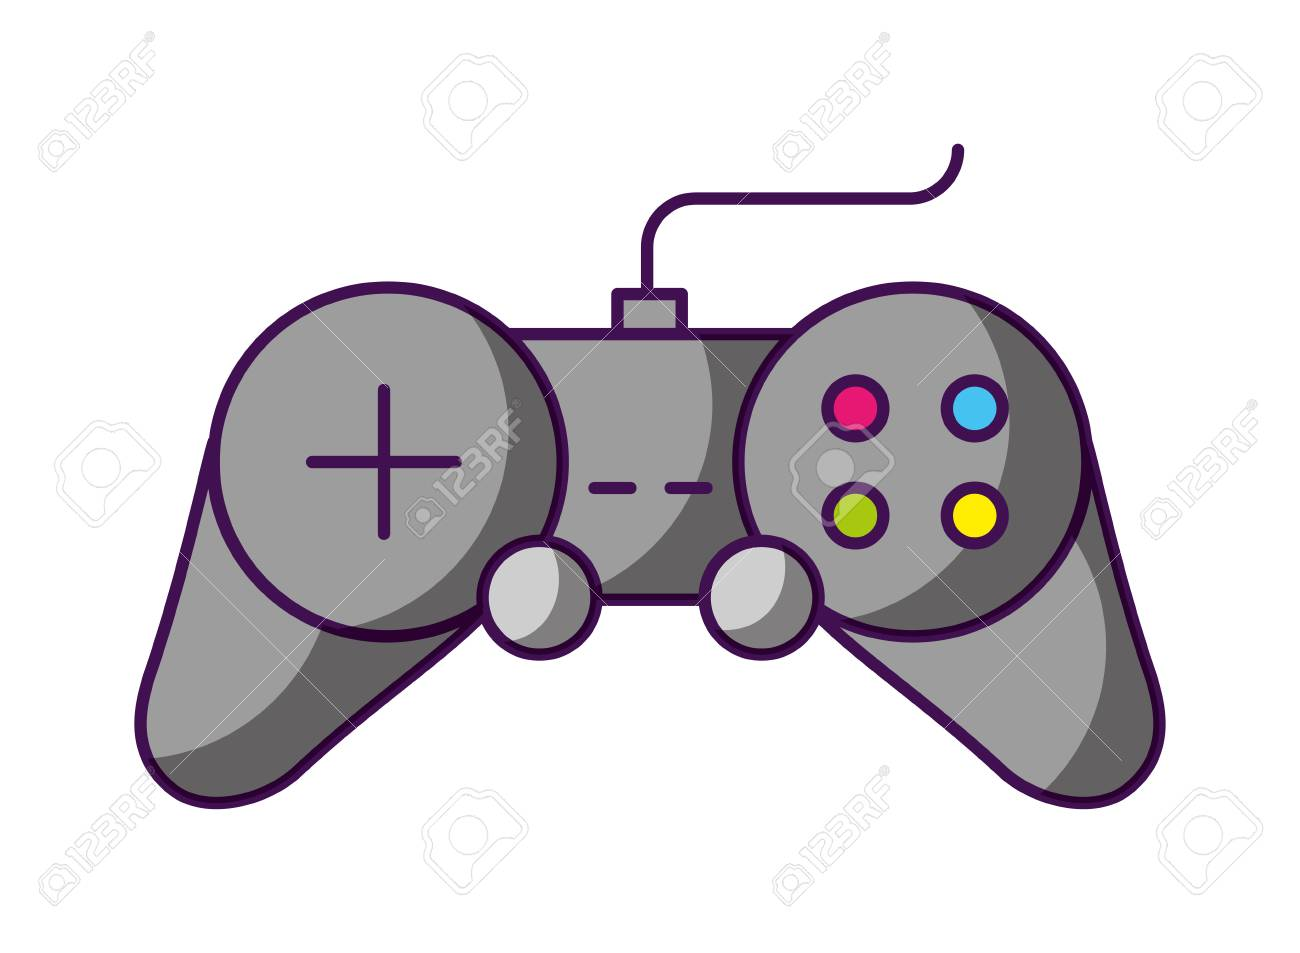 controller video game white background vector illustration - 126463916